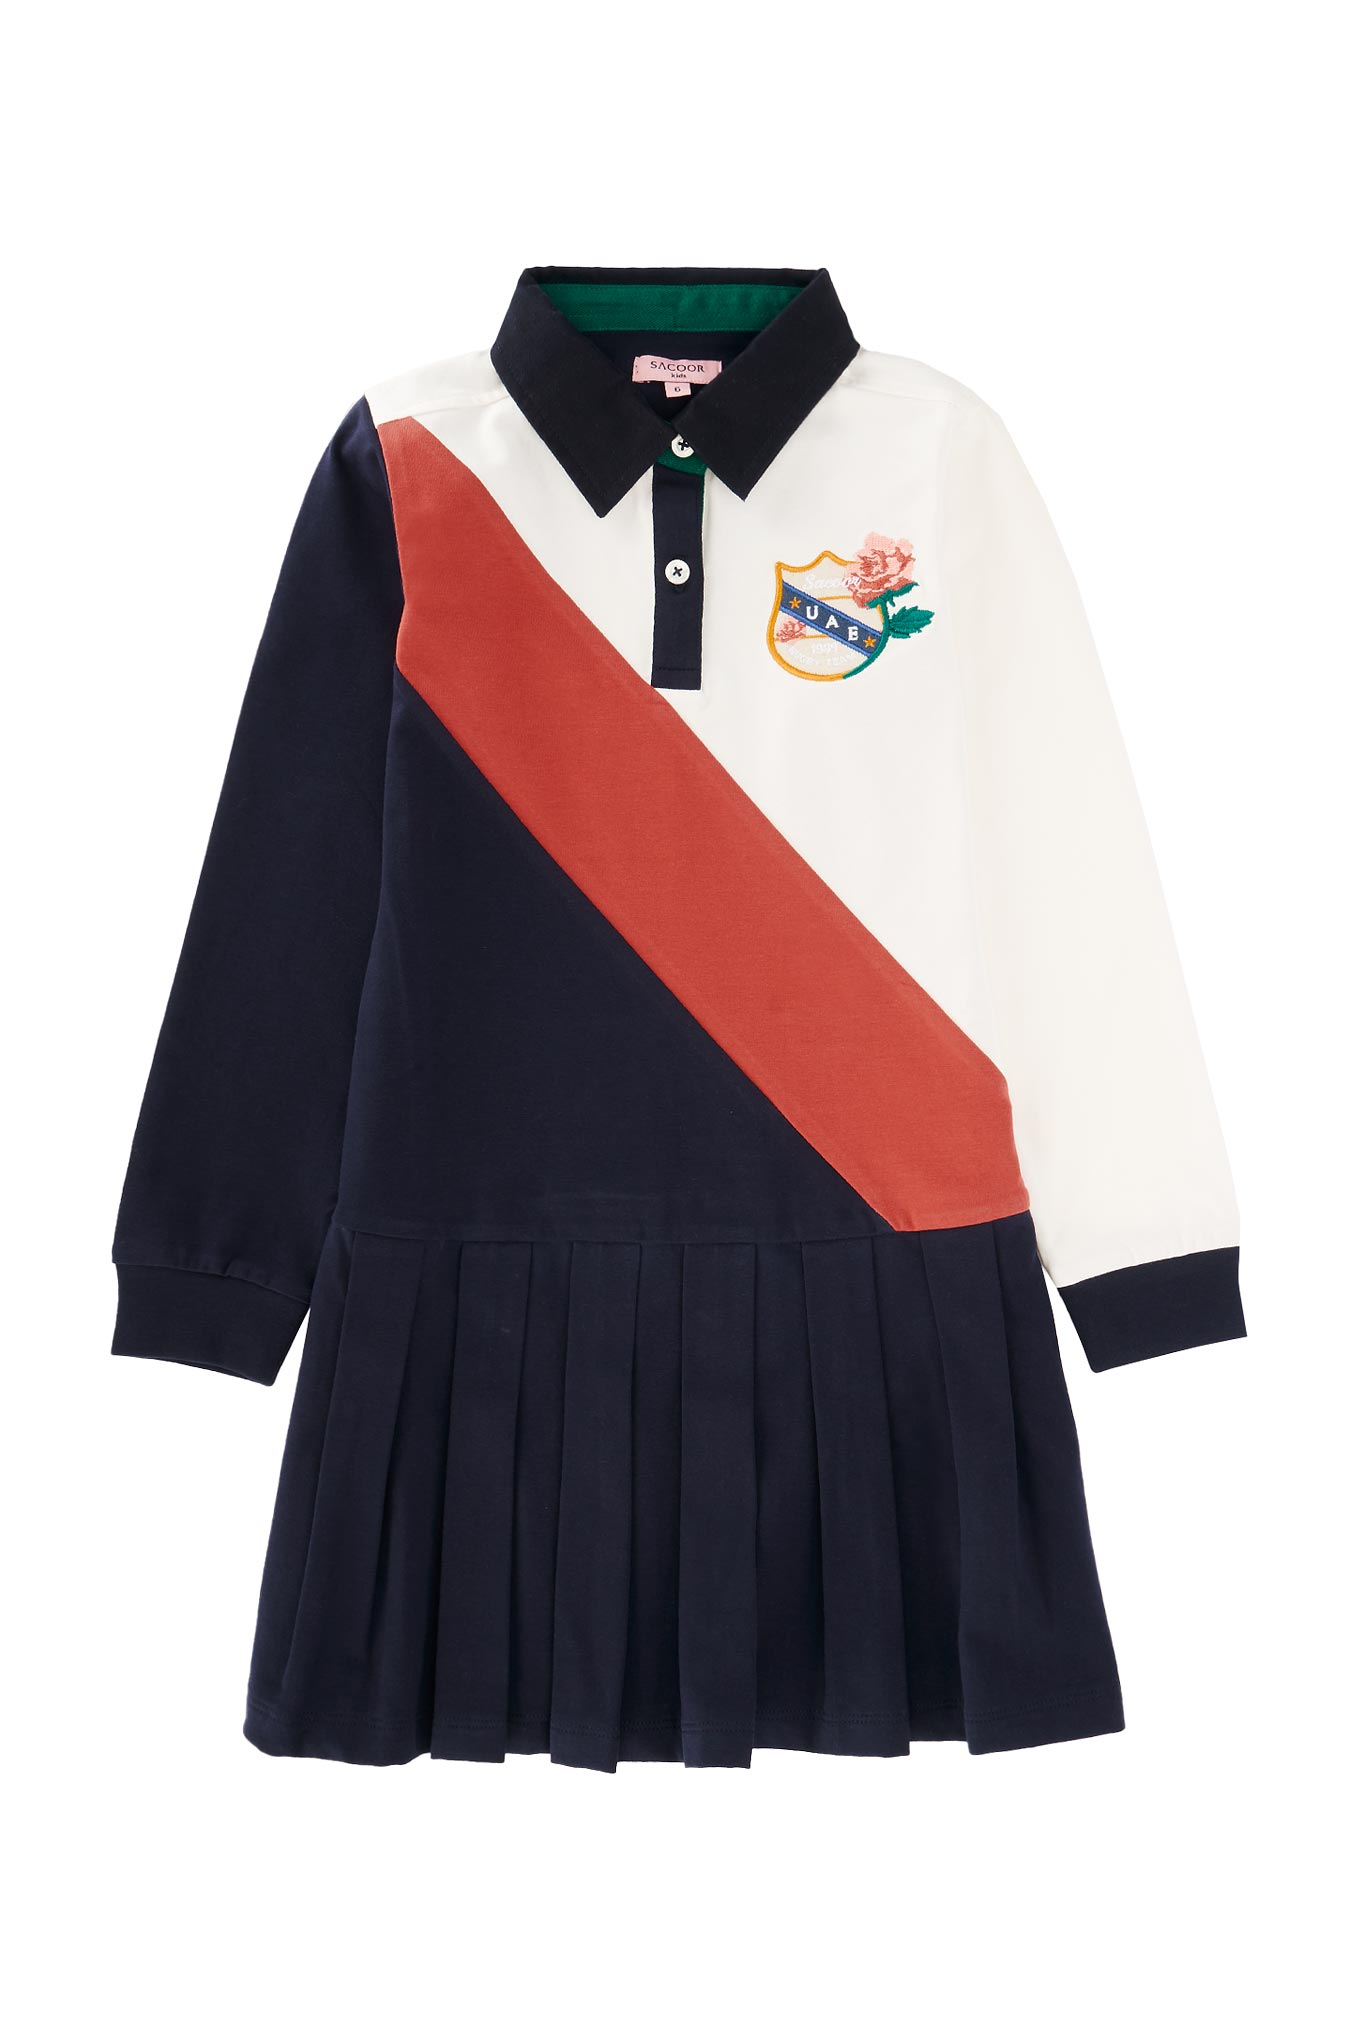 Rugby Dress Dark Blue Sport Girl